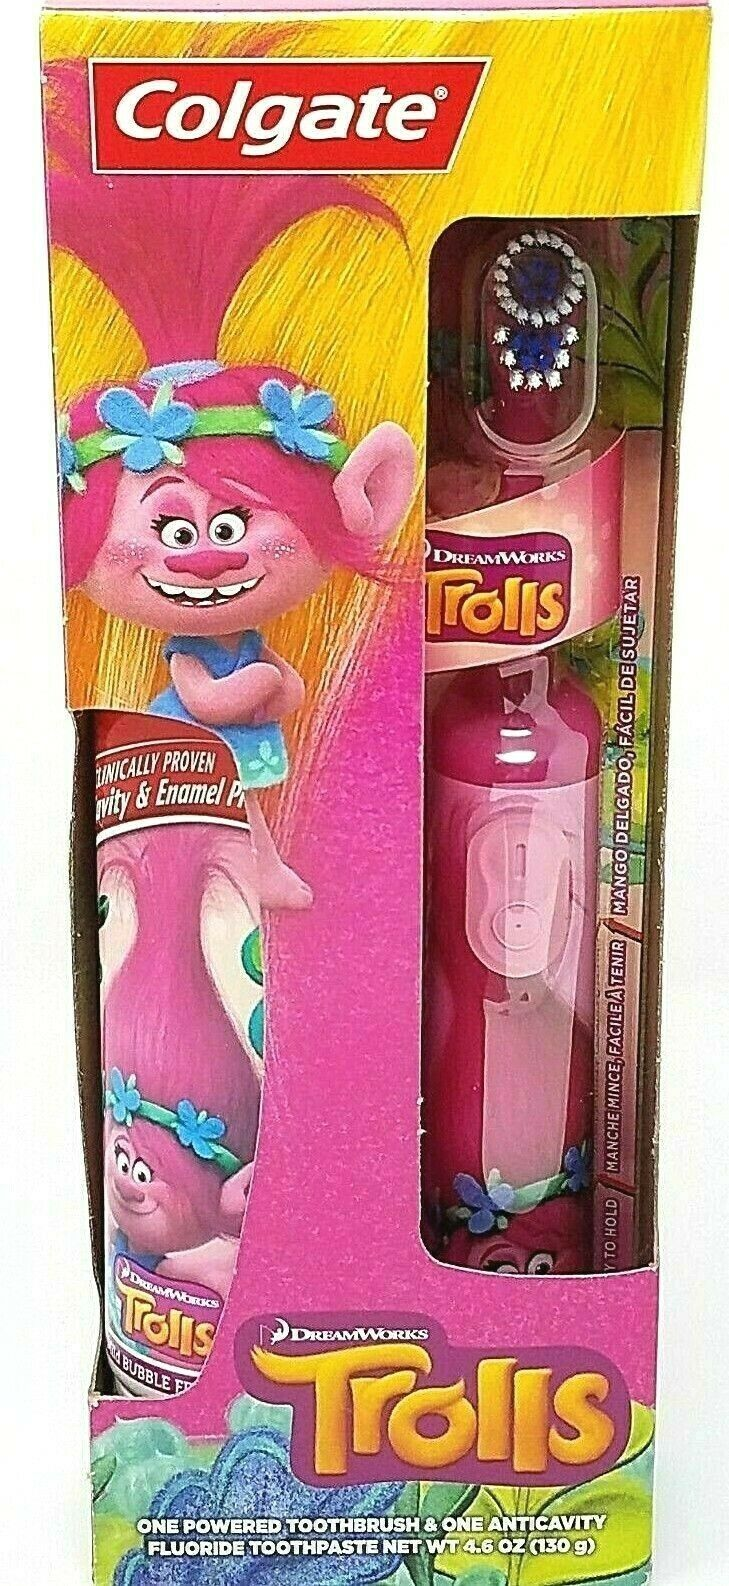 Trolls Colgate Electric Toothbrush + Anti-cavity Fluoride Toothpaste Pink Poppy